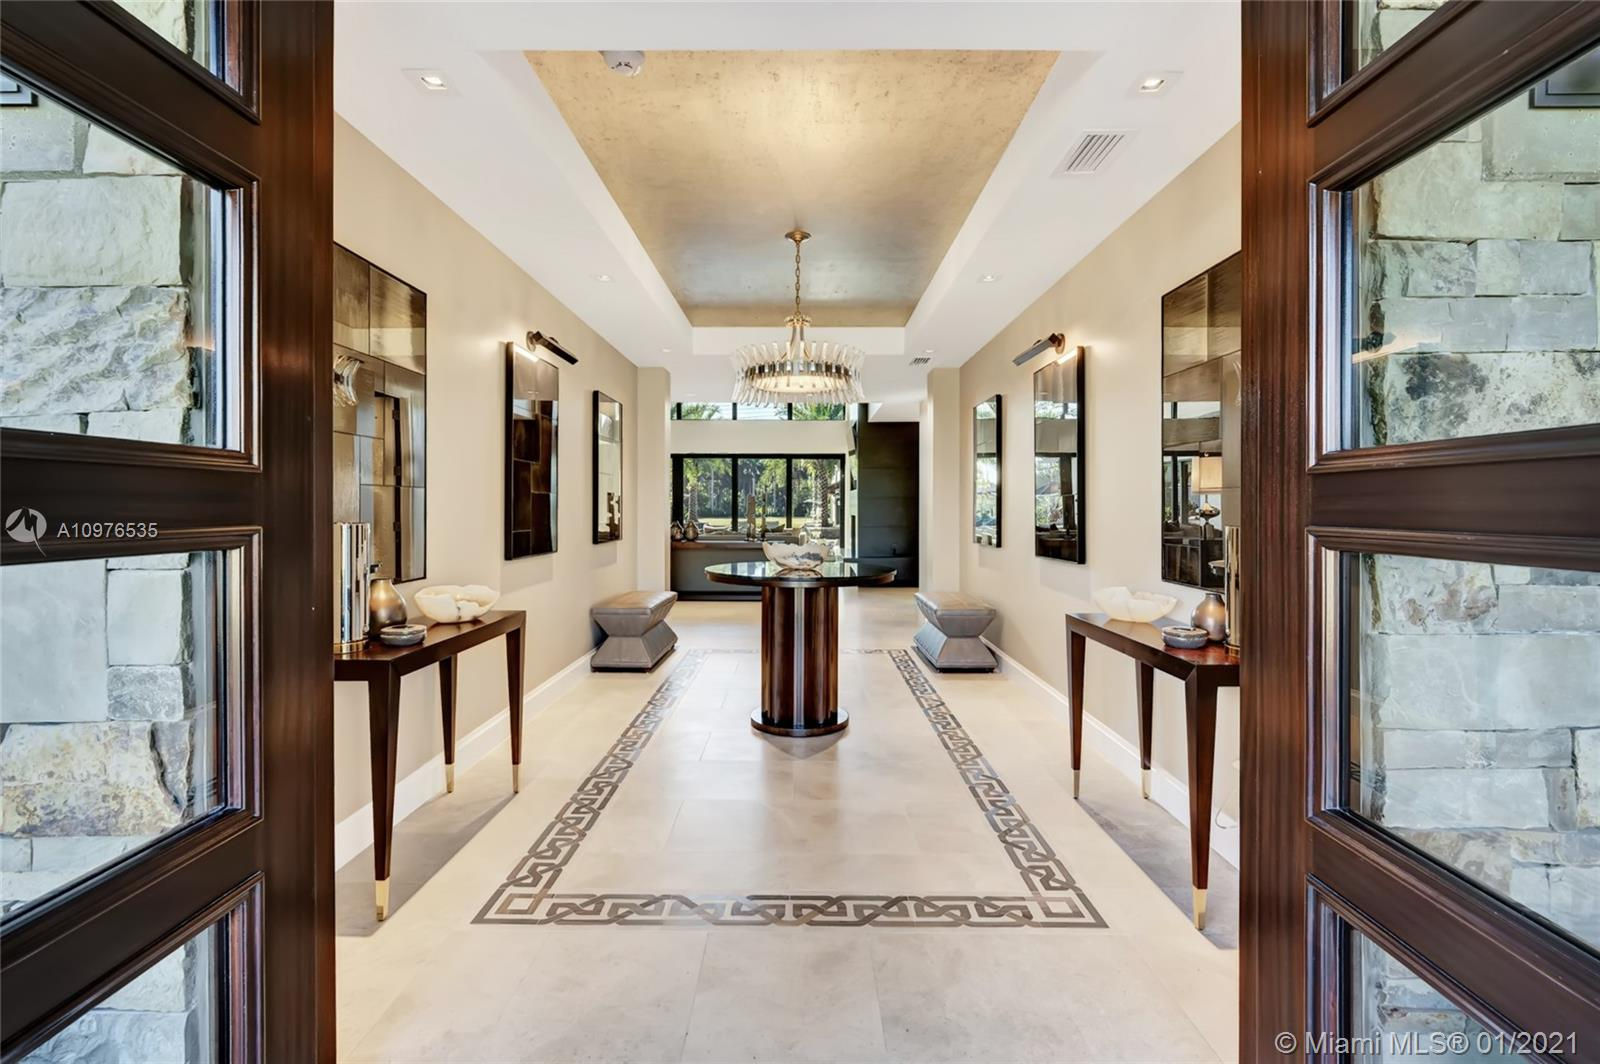 Foyer with custom wallpaper, meticulously designed by a professional.